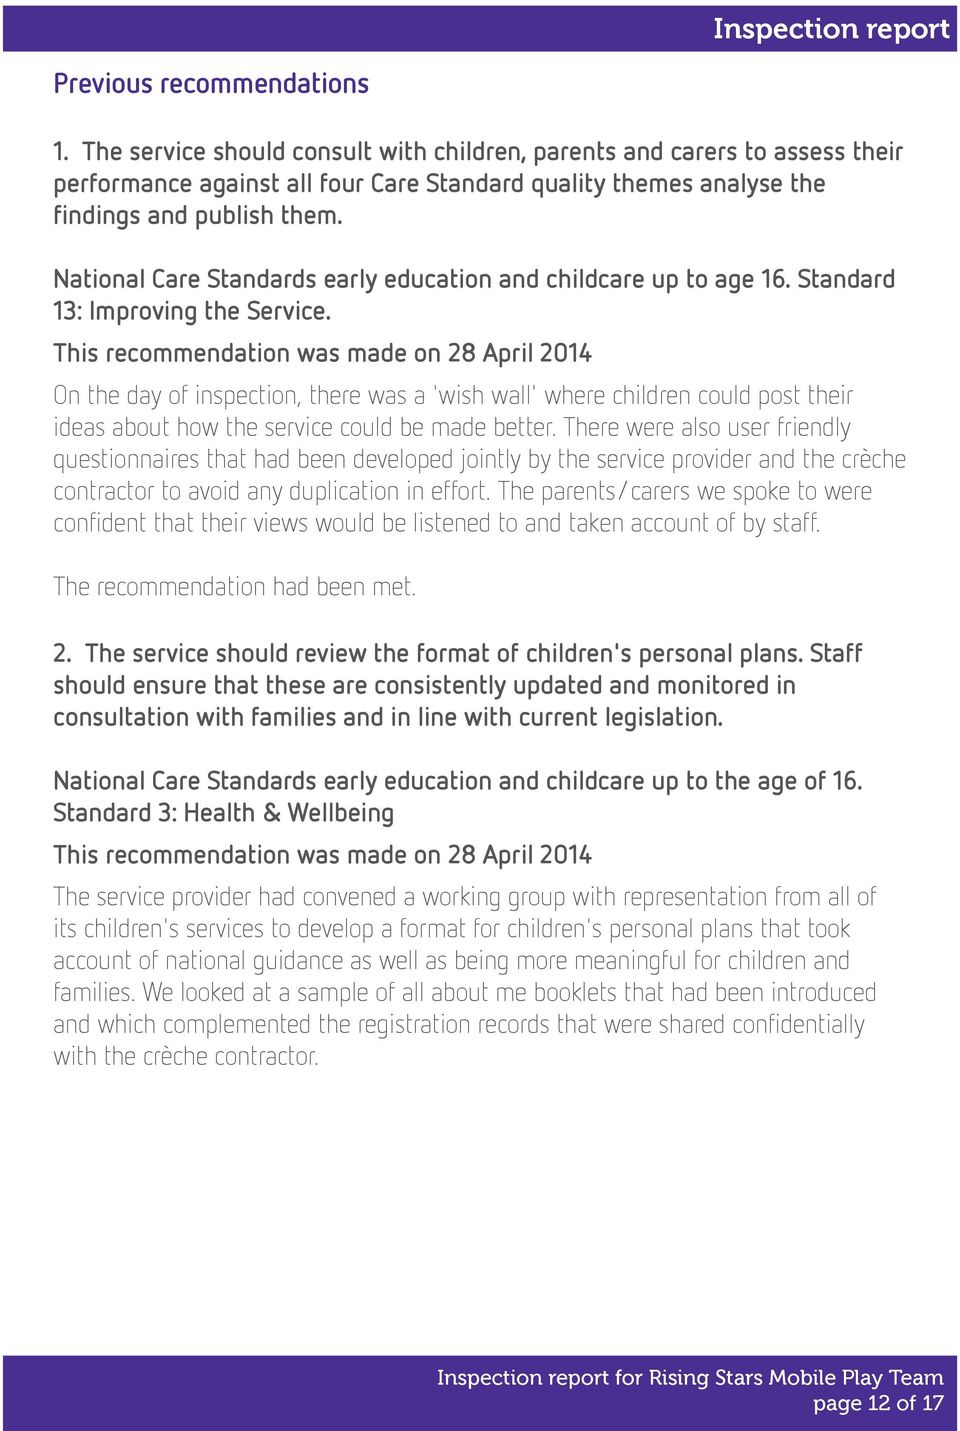 National Care Standards early education and childcare up to age 16. Standard 13: Improving the Service.